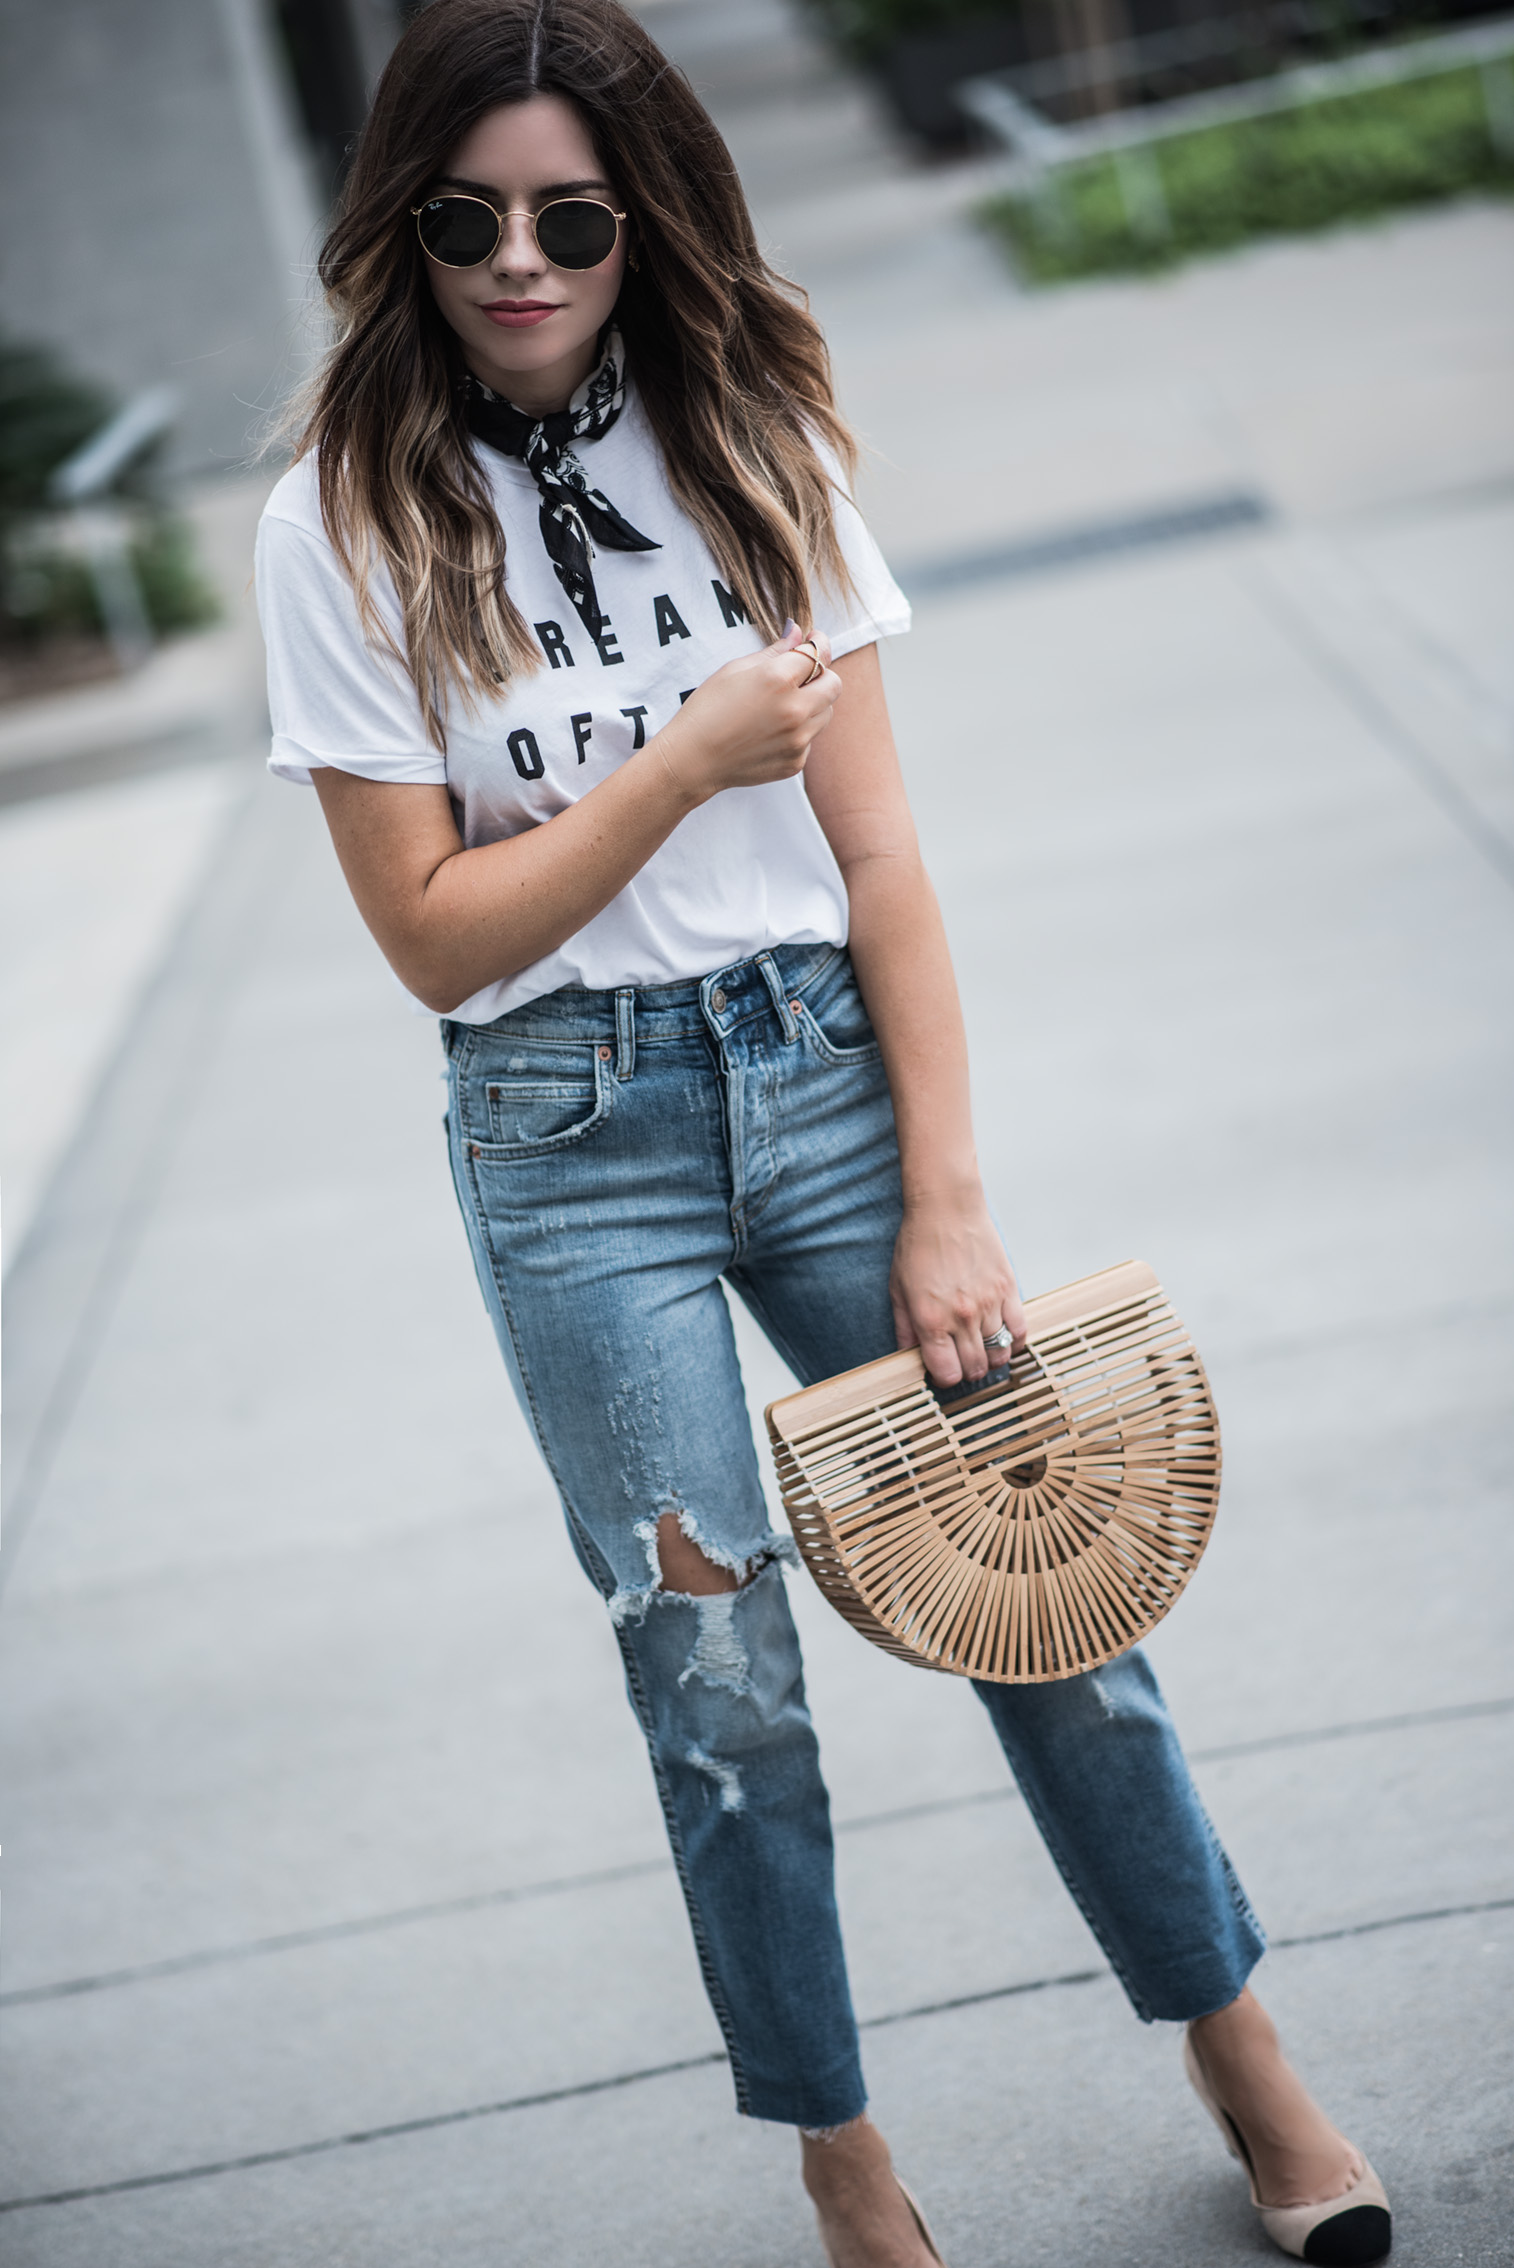 Tiffany Jais Houston fashion and lifestyle blogger | Currently trending-graphic tee's, dream often graphic tee, denim jeans, cult gaia bag, casual outfits, street style outfits 2017